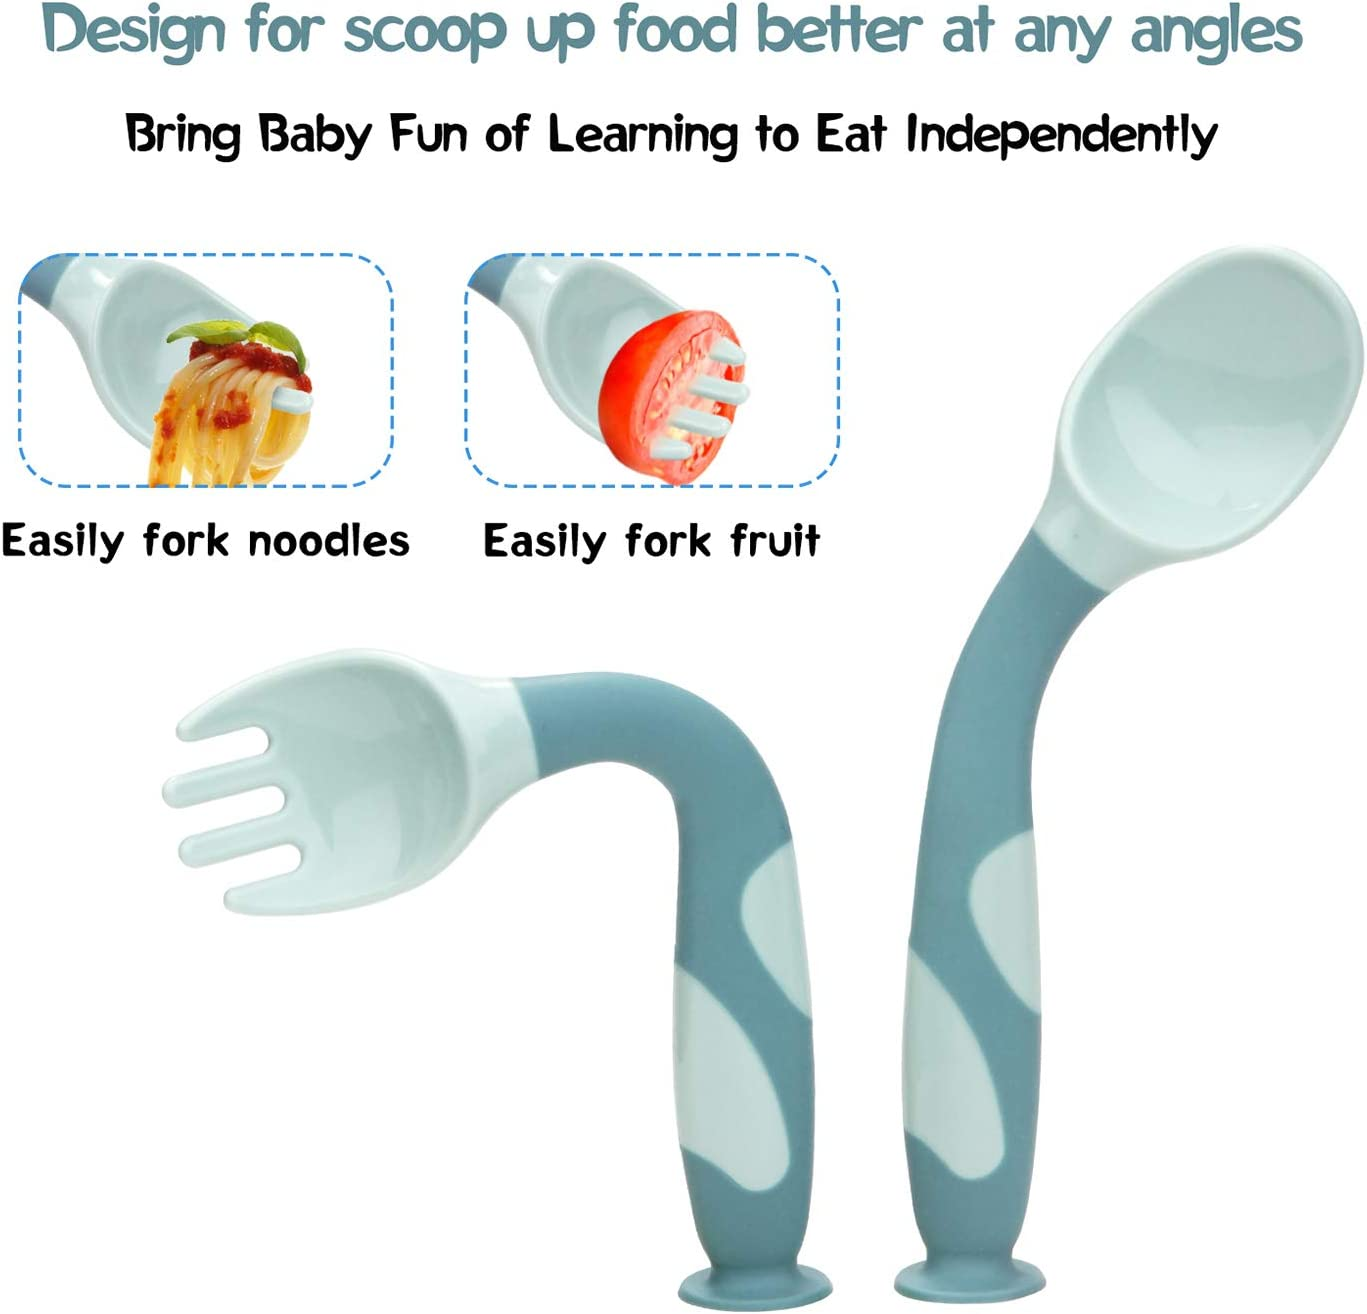 Baby Utensils Spoons Forks with Travel Safe Case for Toddler Babies Children Feeding Training Spoon Easy Grip Bendable Perfect Self Feeding Learning Stand Spoon Fork